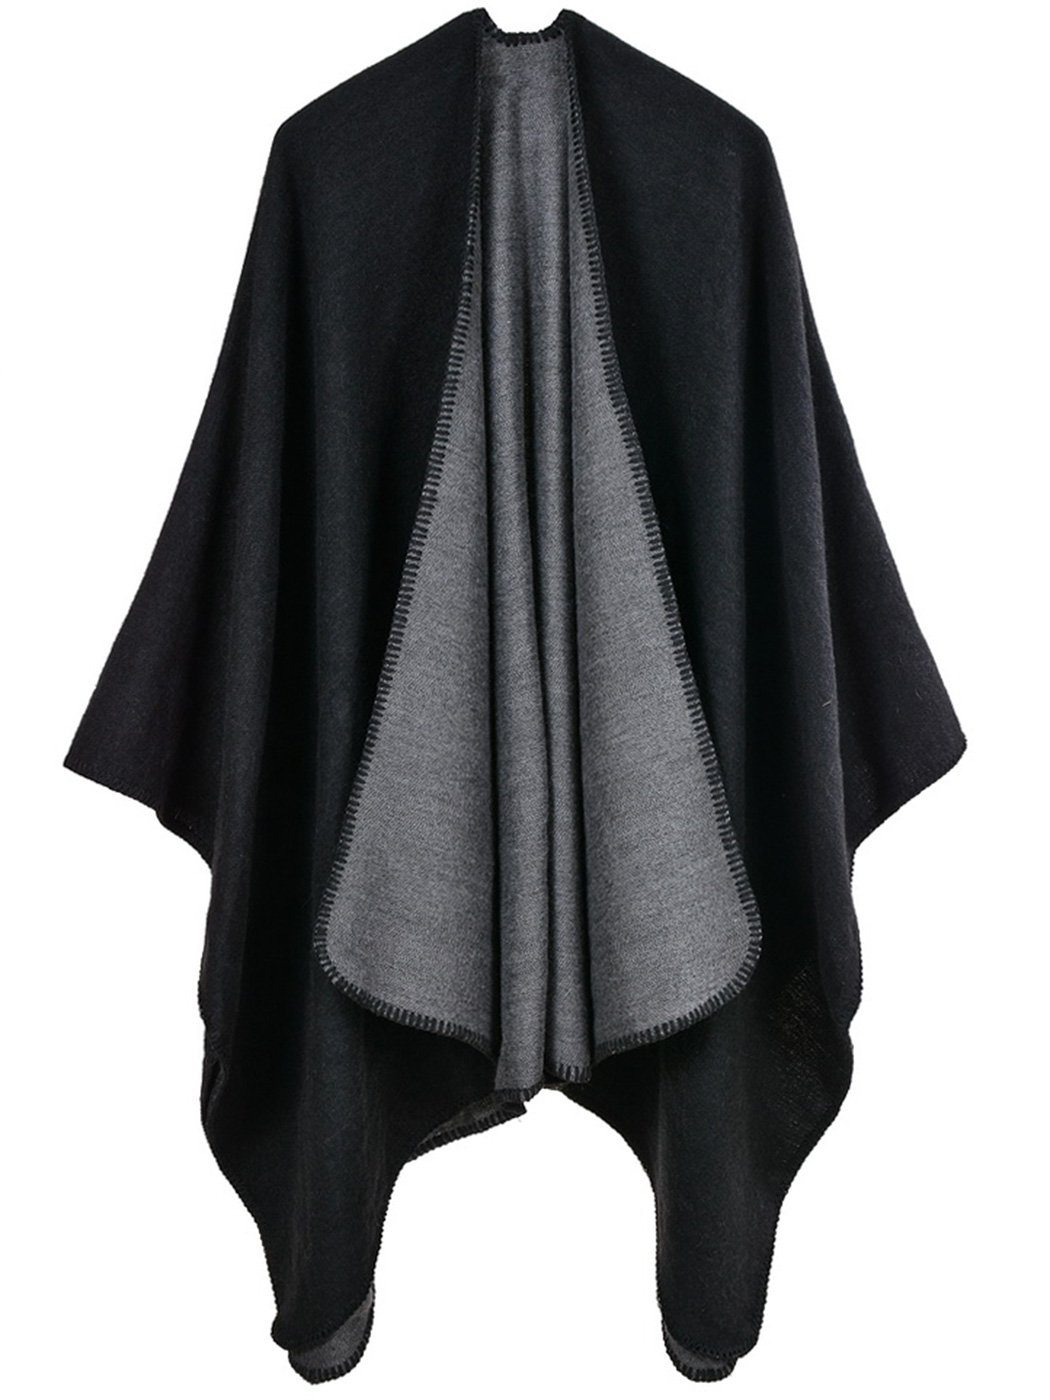 FEOYA Woman Shawls Wrap Cape Reversible Winter Fall Open Front Poncho Outwear Cardigan Scarf Black Gray